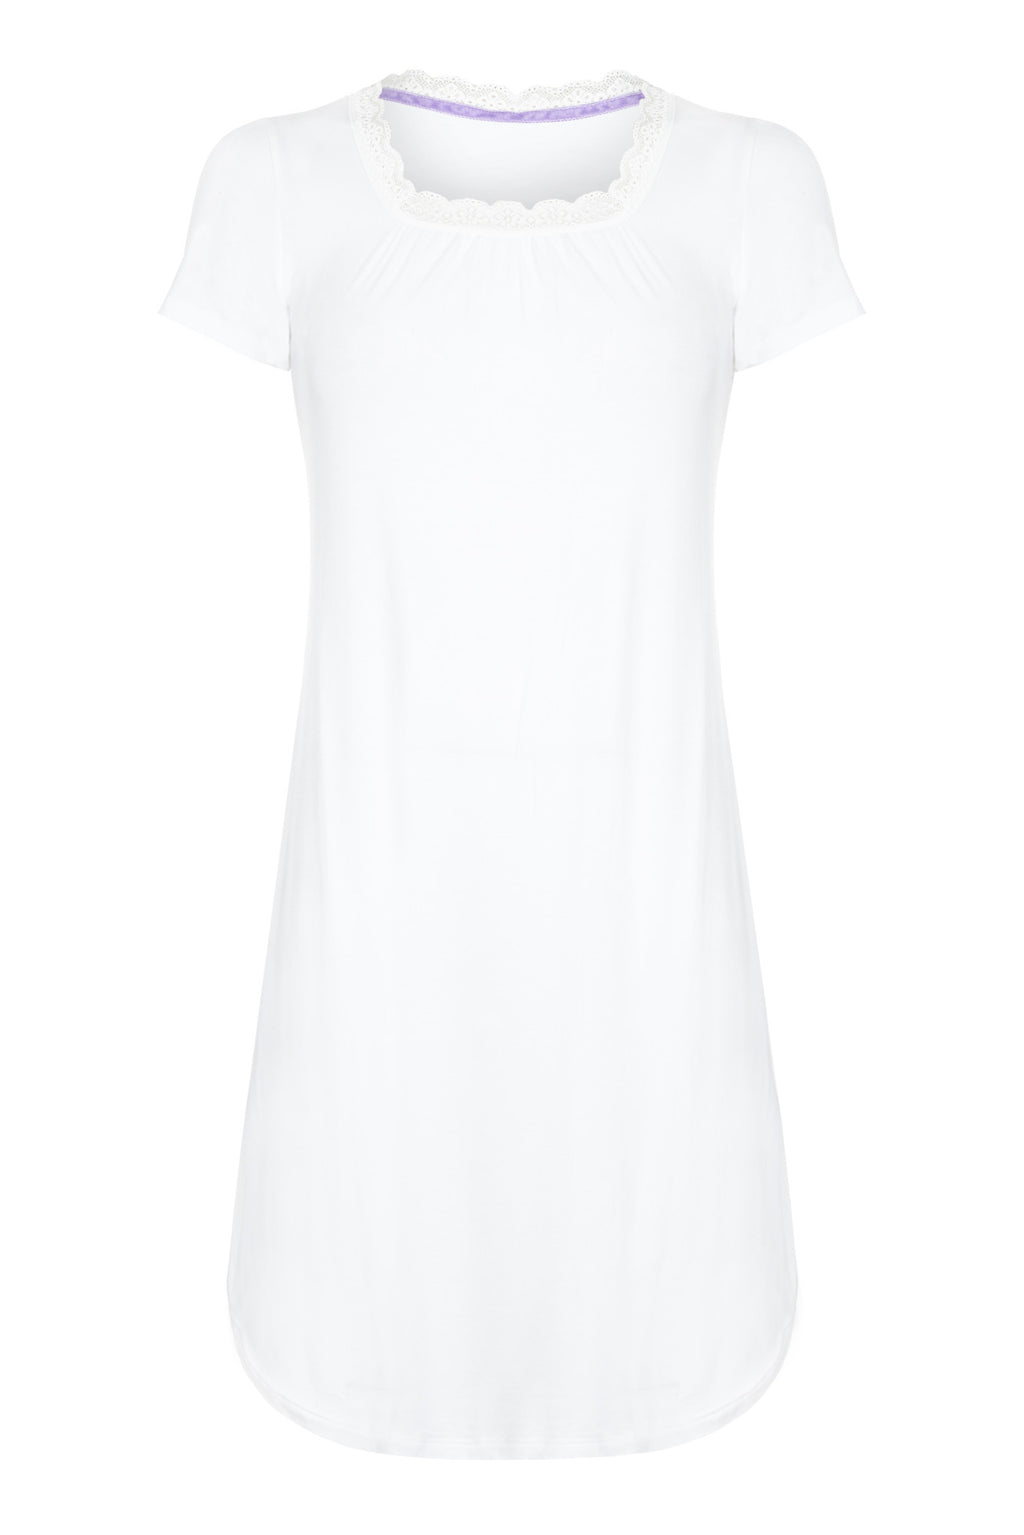 White Nightdress - Lavender Hill Clothing